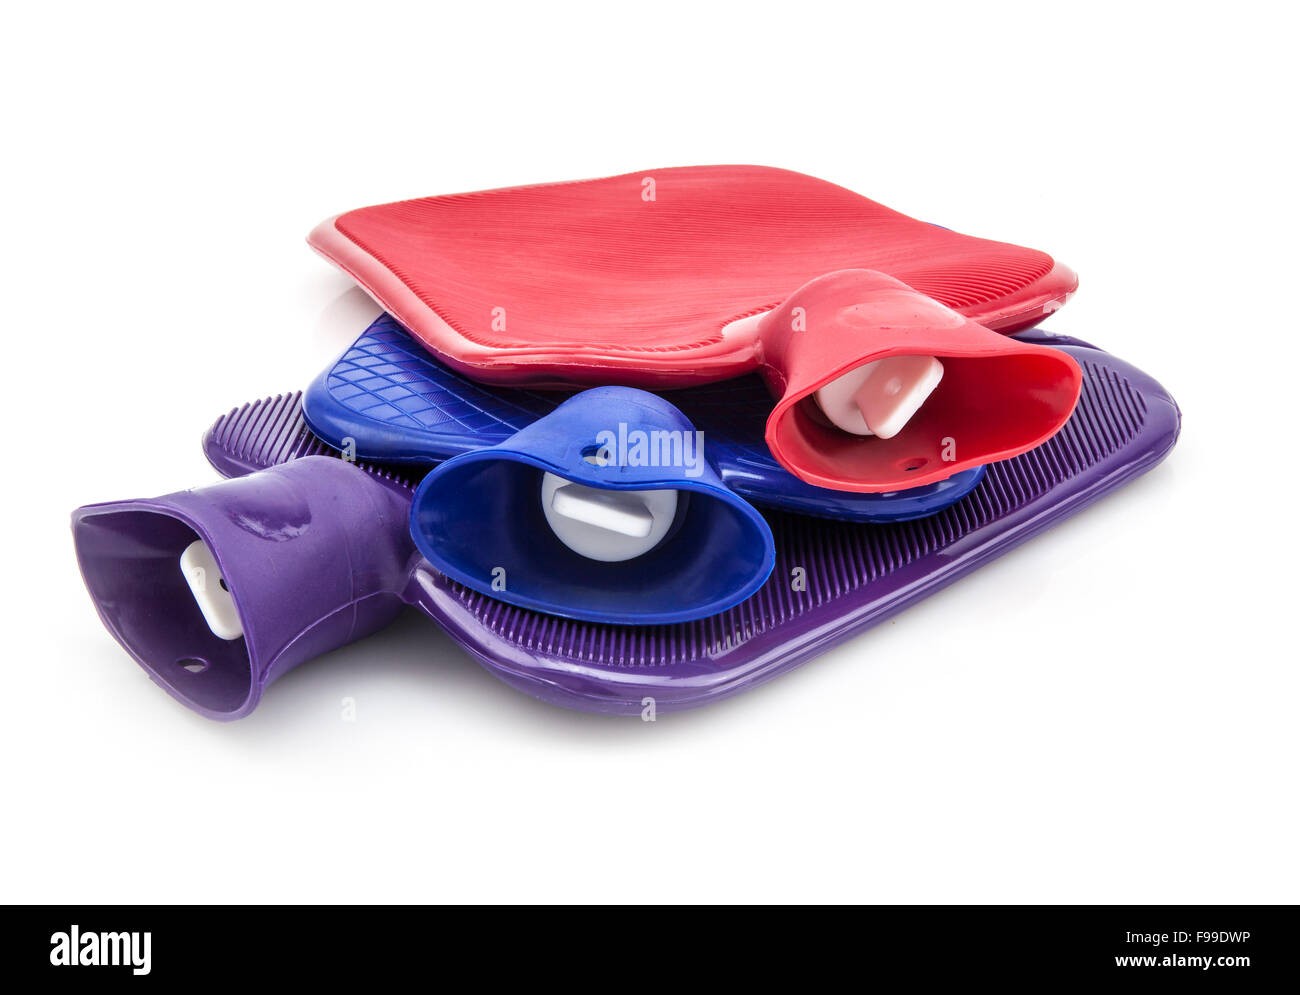 Three Hot Water Bottles on a White Background - Stock Image